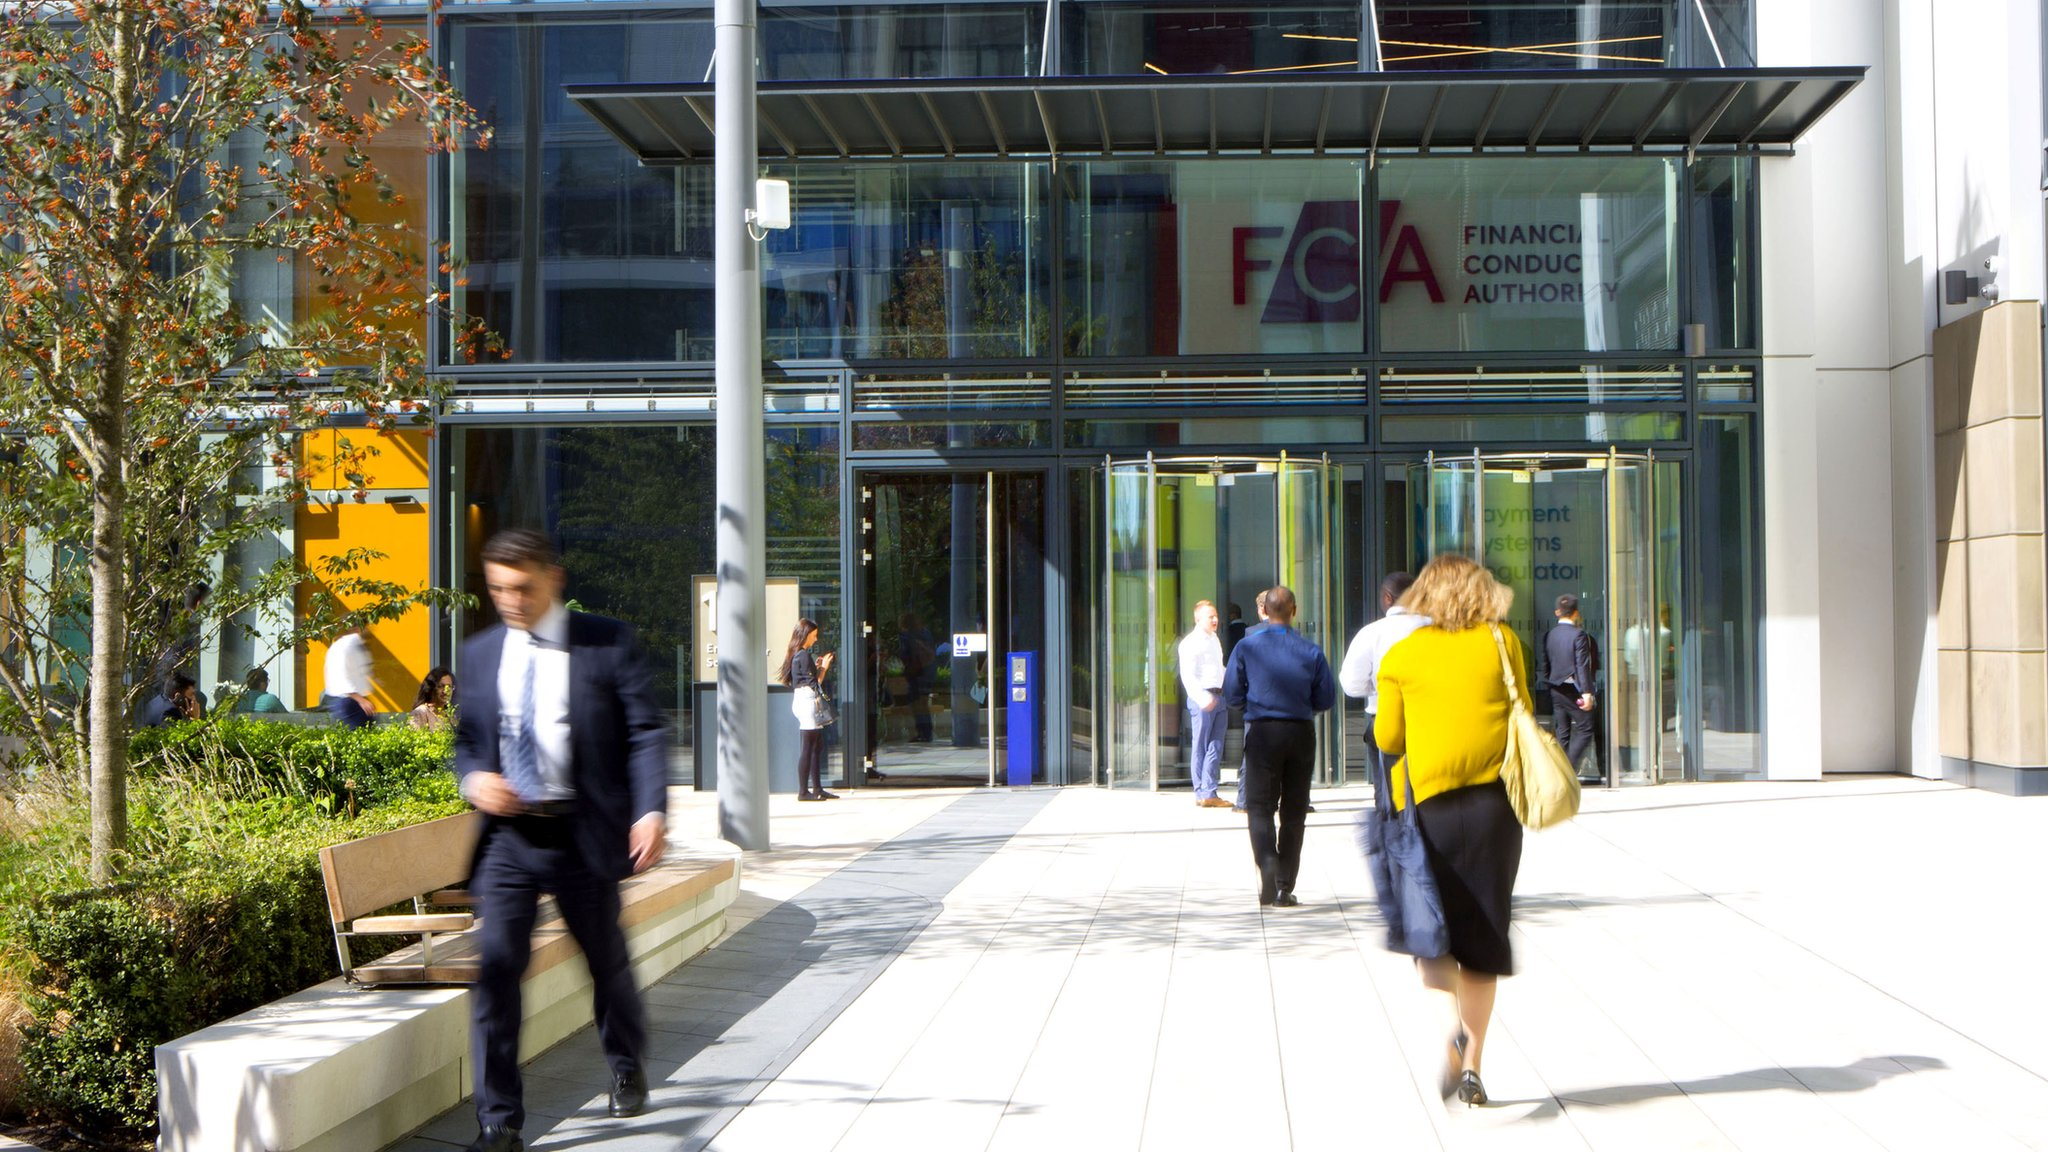 Financial Conduct Authority headquarters